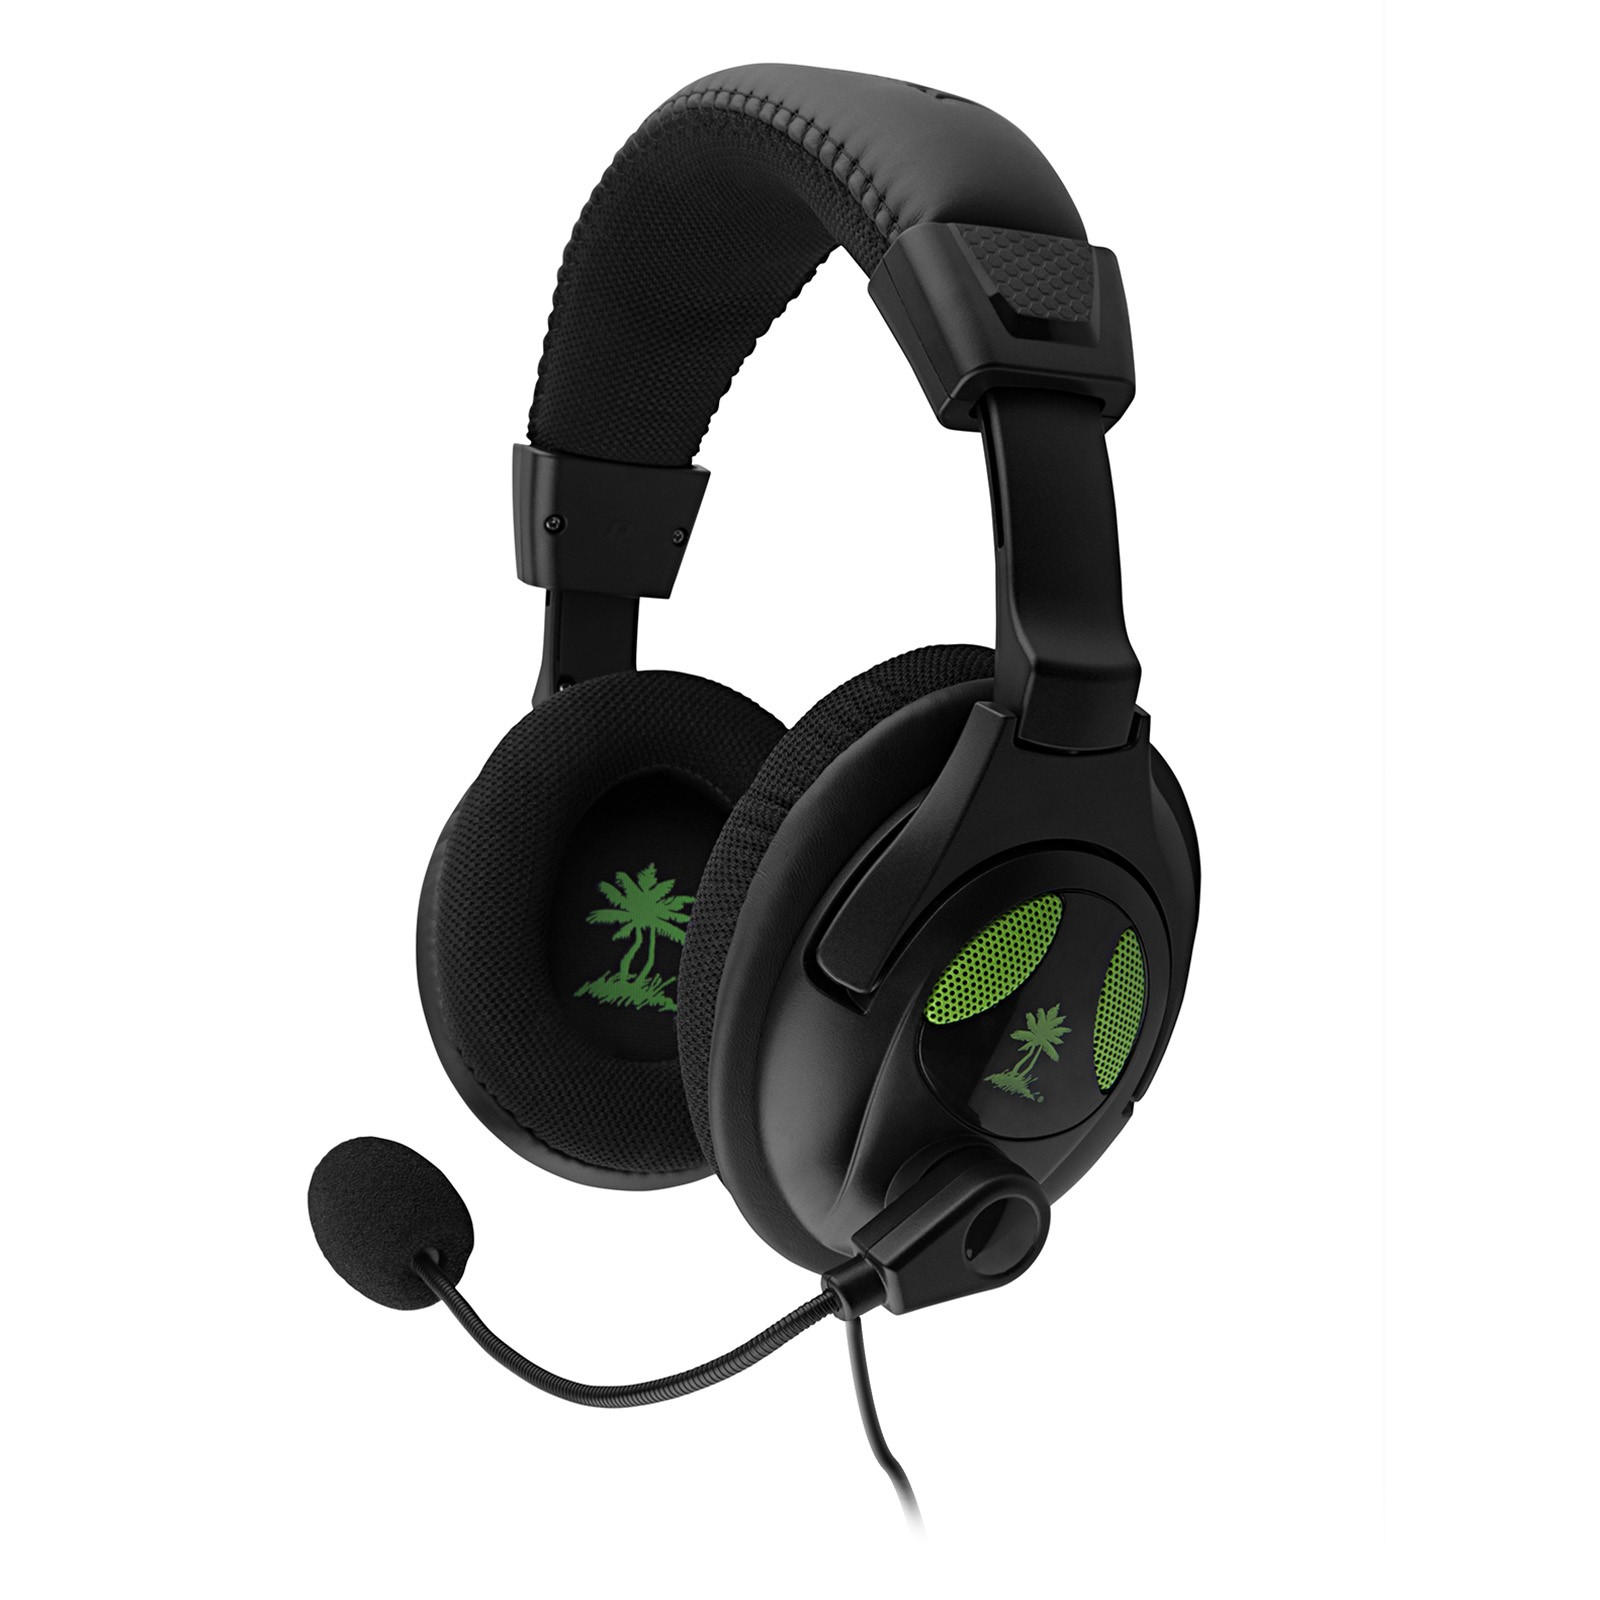 Turtle Beach Ear Force DX12 Gaming Headset for Xbox 360 (Black) (Certified Refurbished)